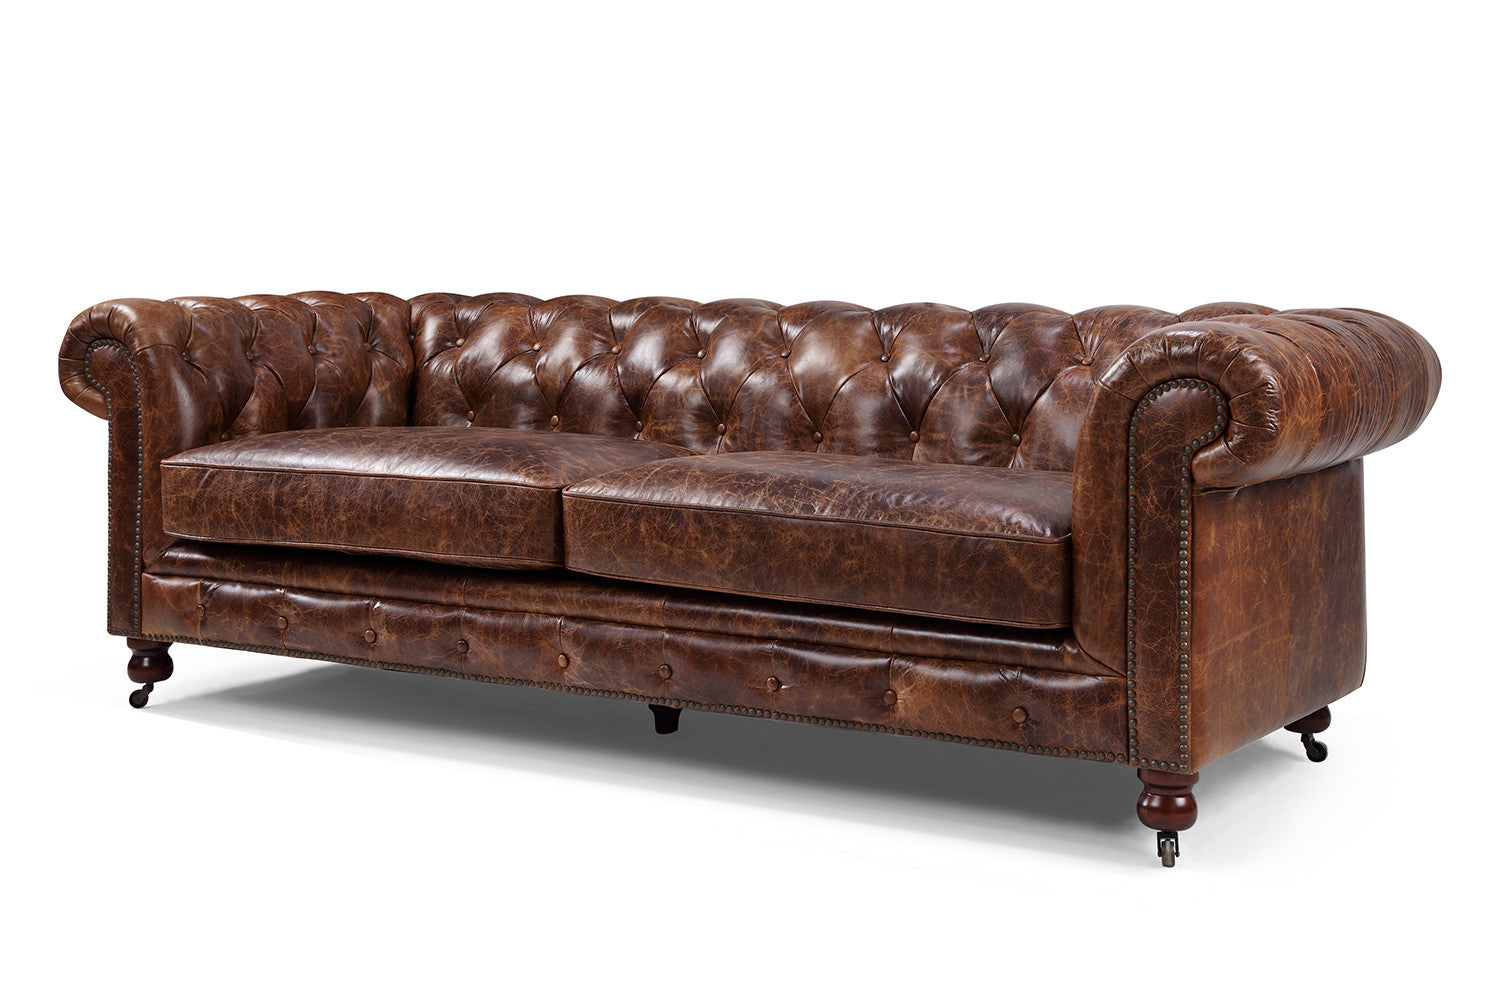 kensington chesterfield tufted sofa by rose moore chesterfield furniture history